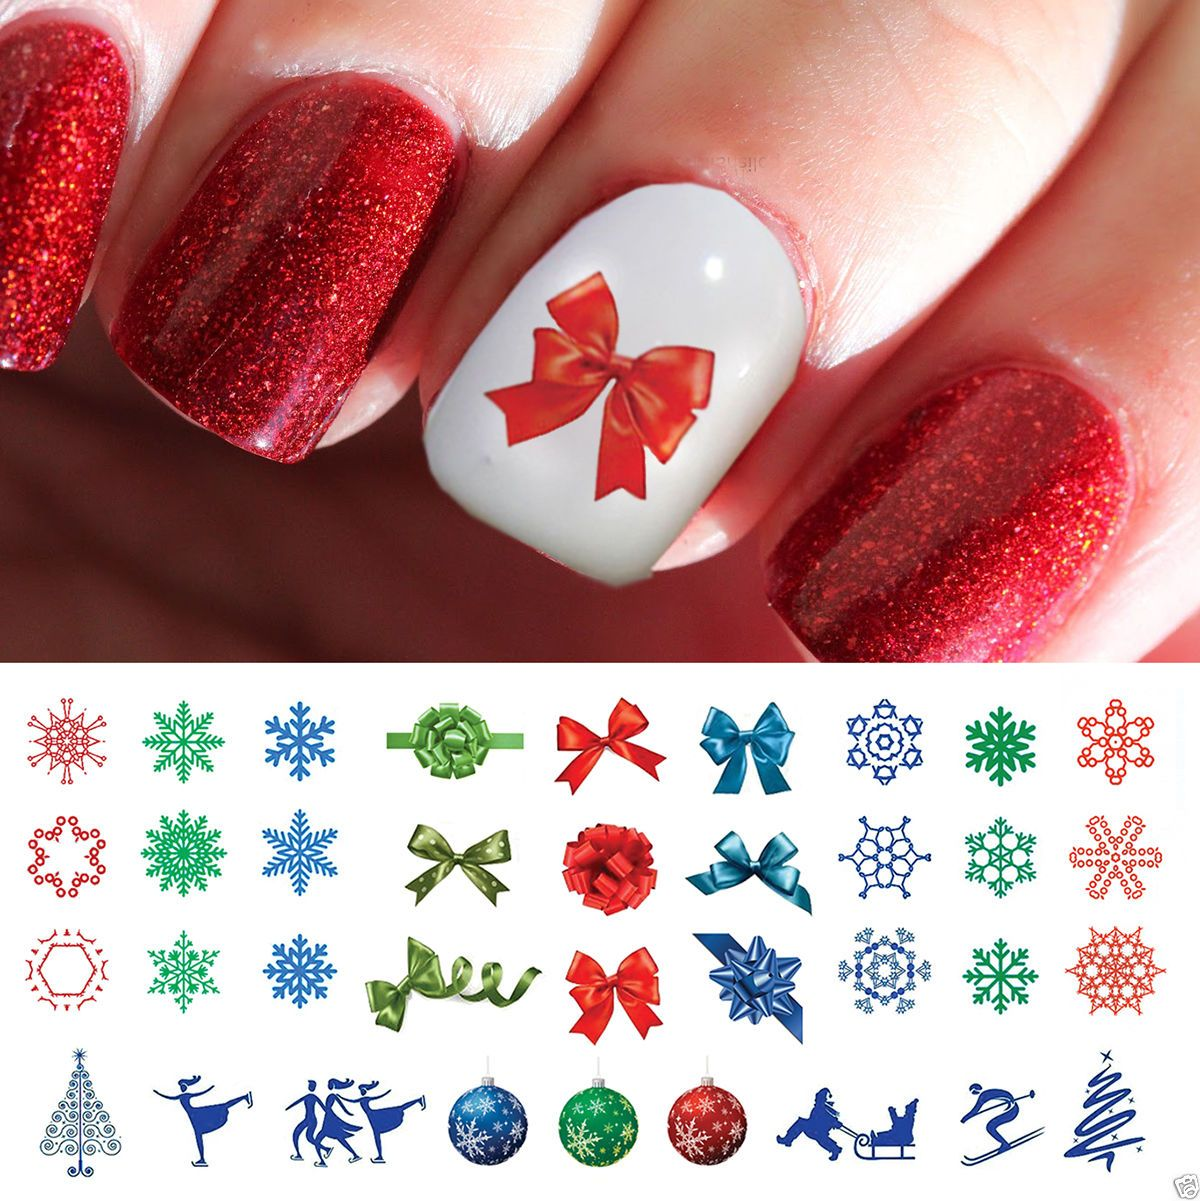 Holiday Christmas Nail Art Waterslide Decals #5 - Salon Quality ...